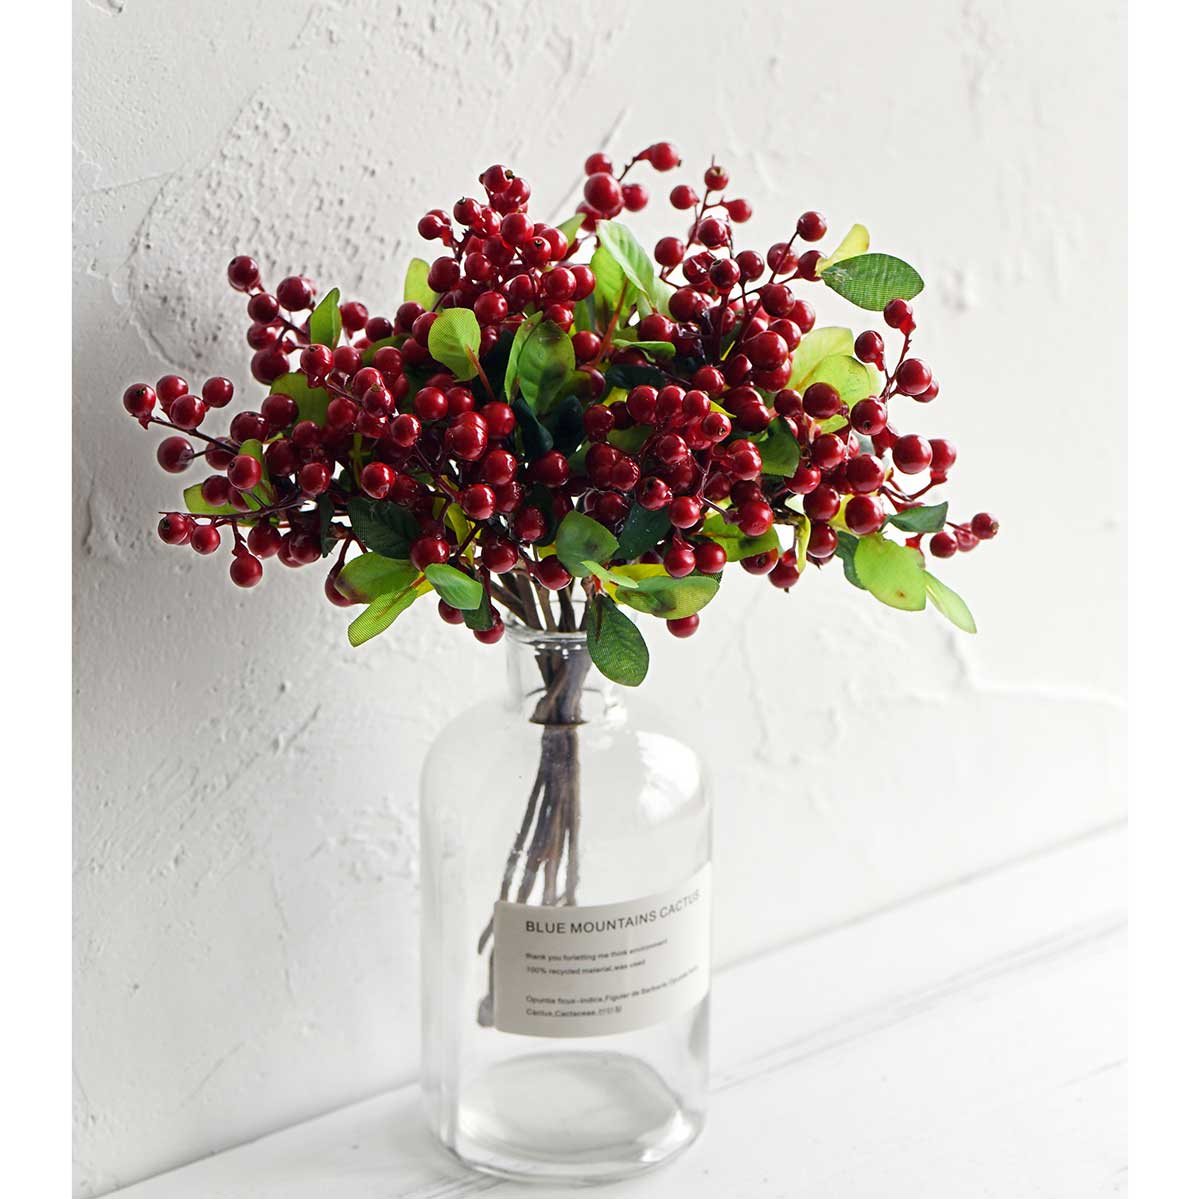 10 Stems Artificial Red Berry Bouquet 9.8 Inches (25cm)